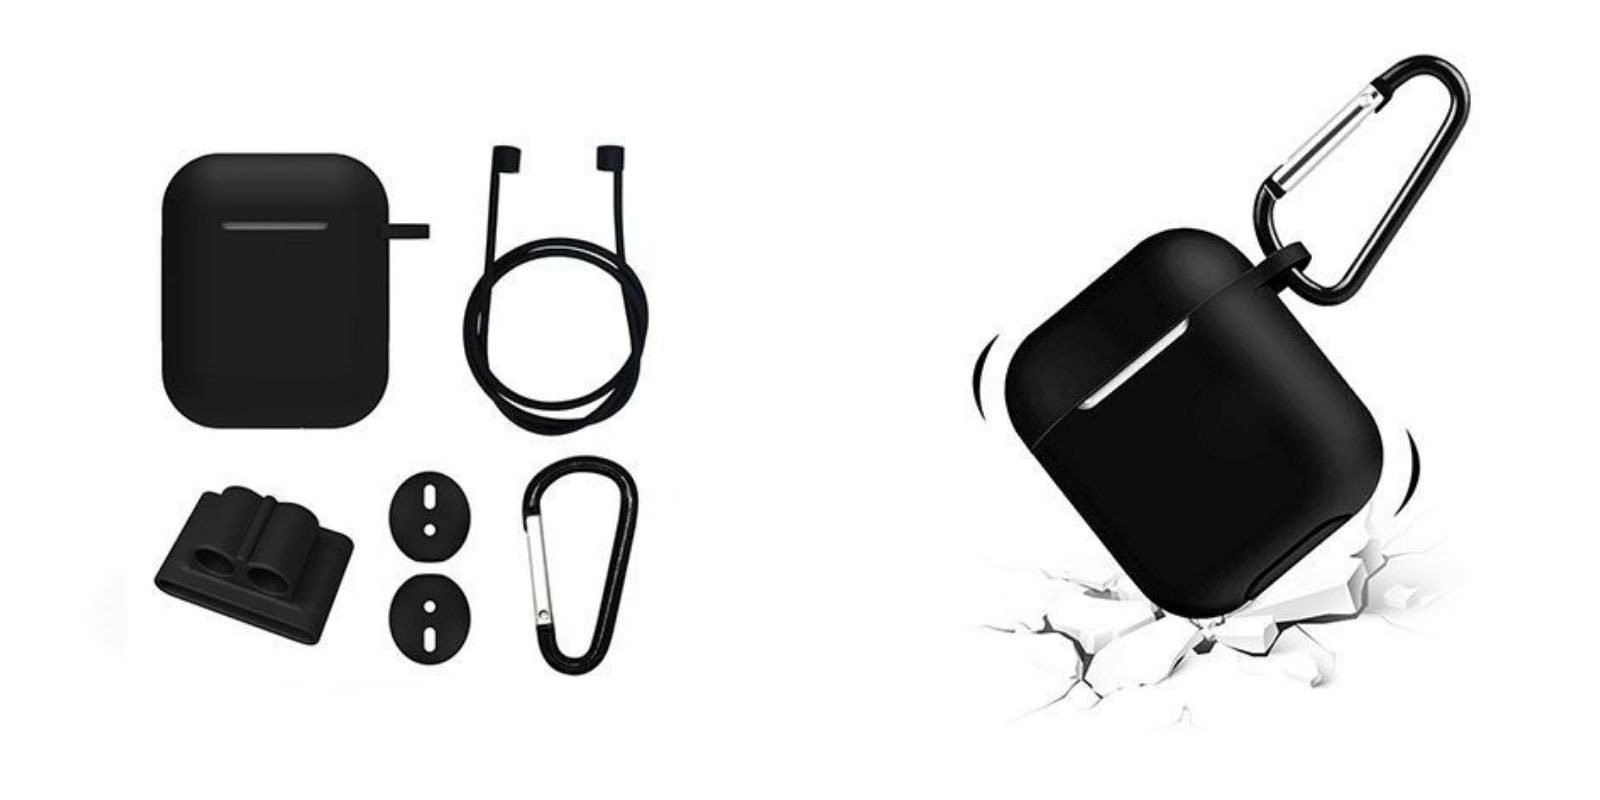 AirPod Accessories Pack